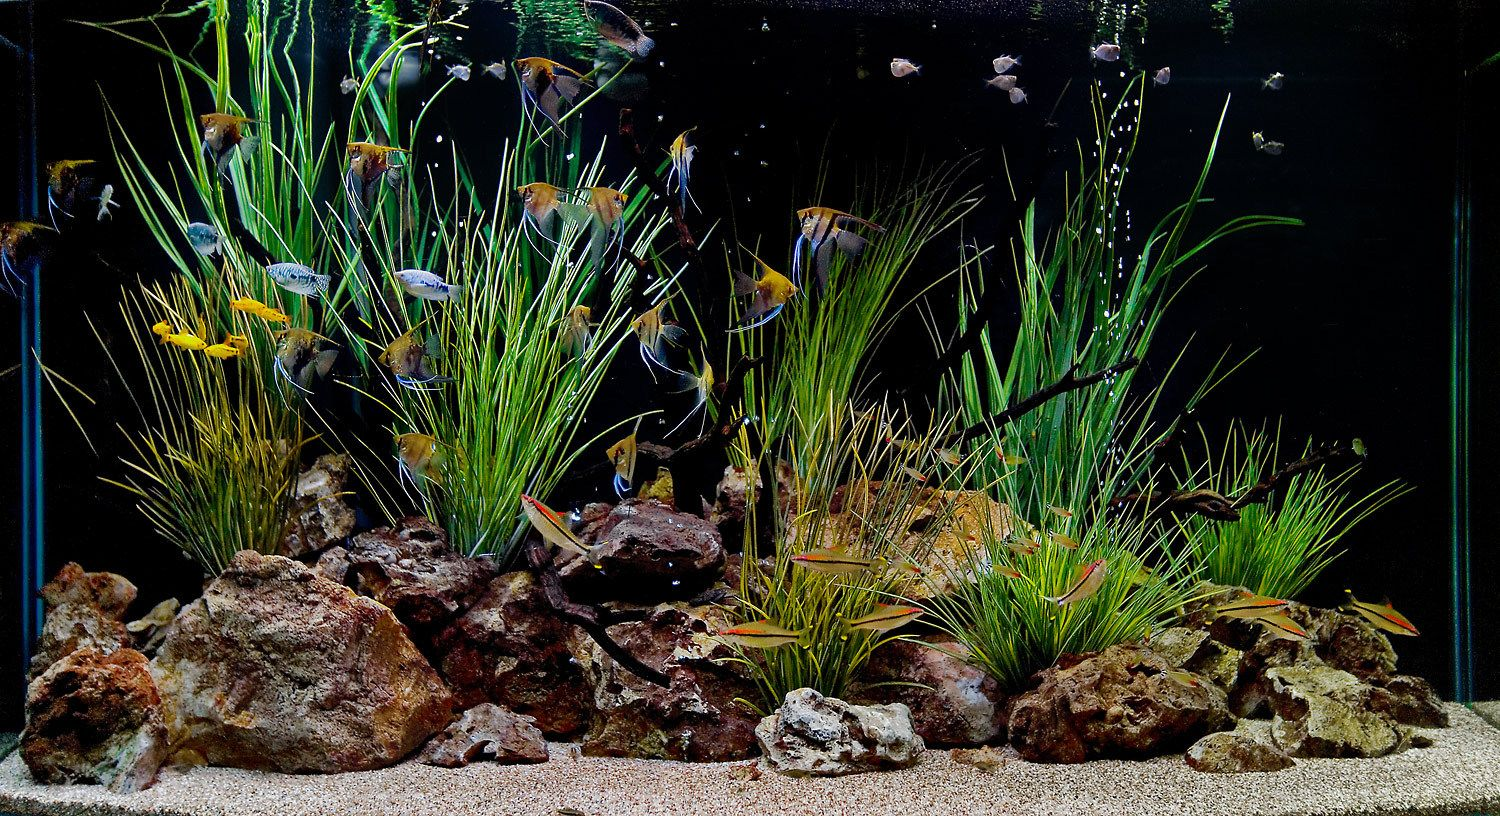 Freshwater aquarium fish tank pictures - Freshwater Aquarium Design Ideas Aquarium Design Group Custom Aquarium Design Installation And Service